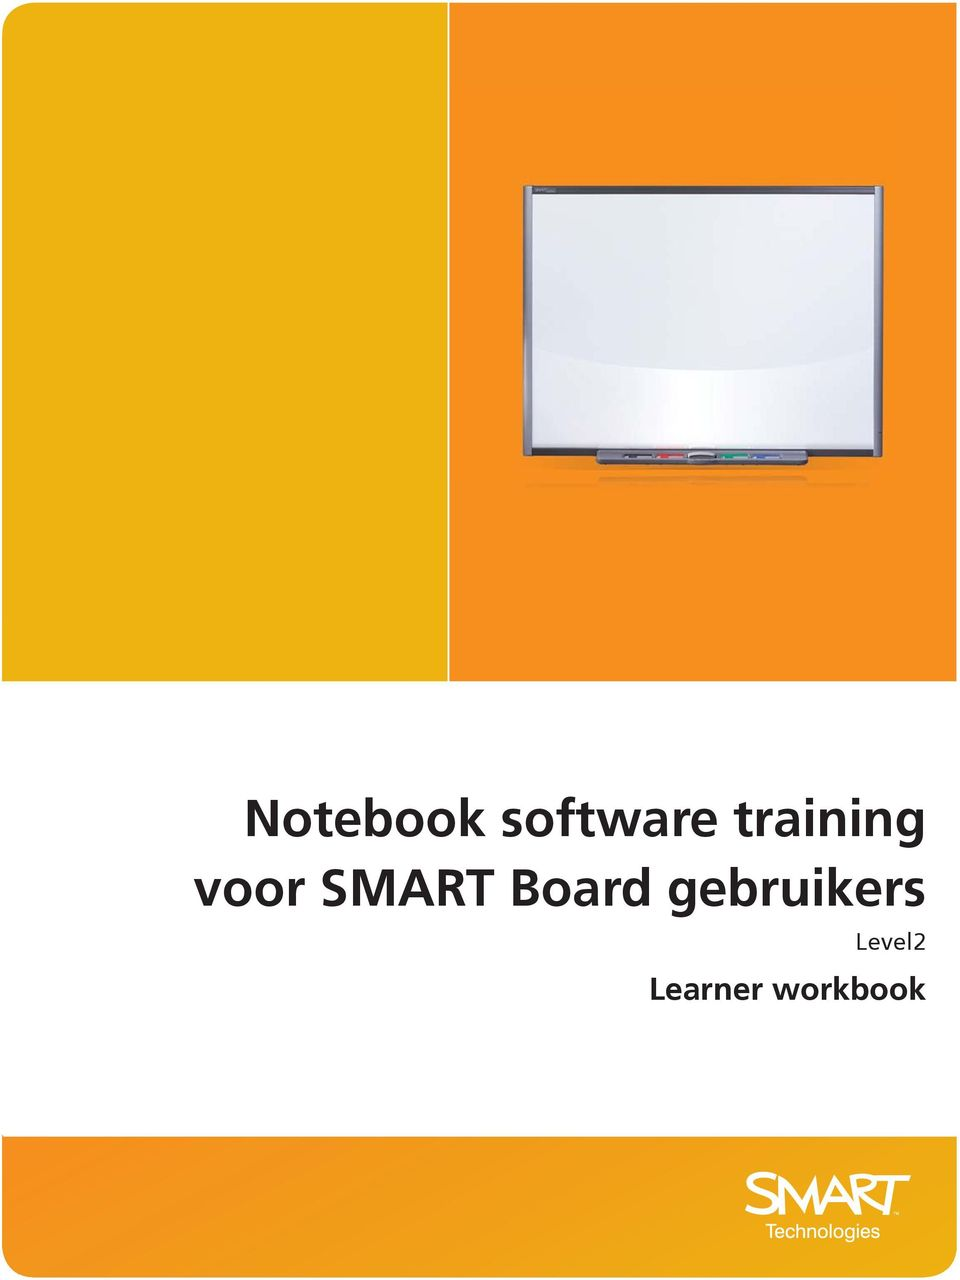 gebruikers for SMART Board users Level